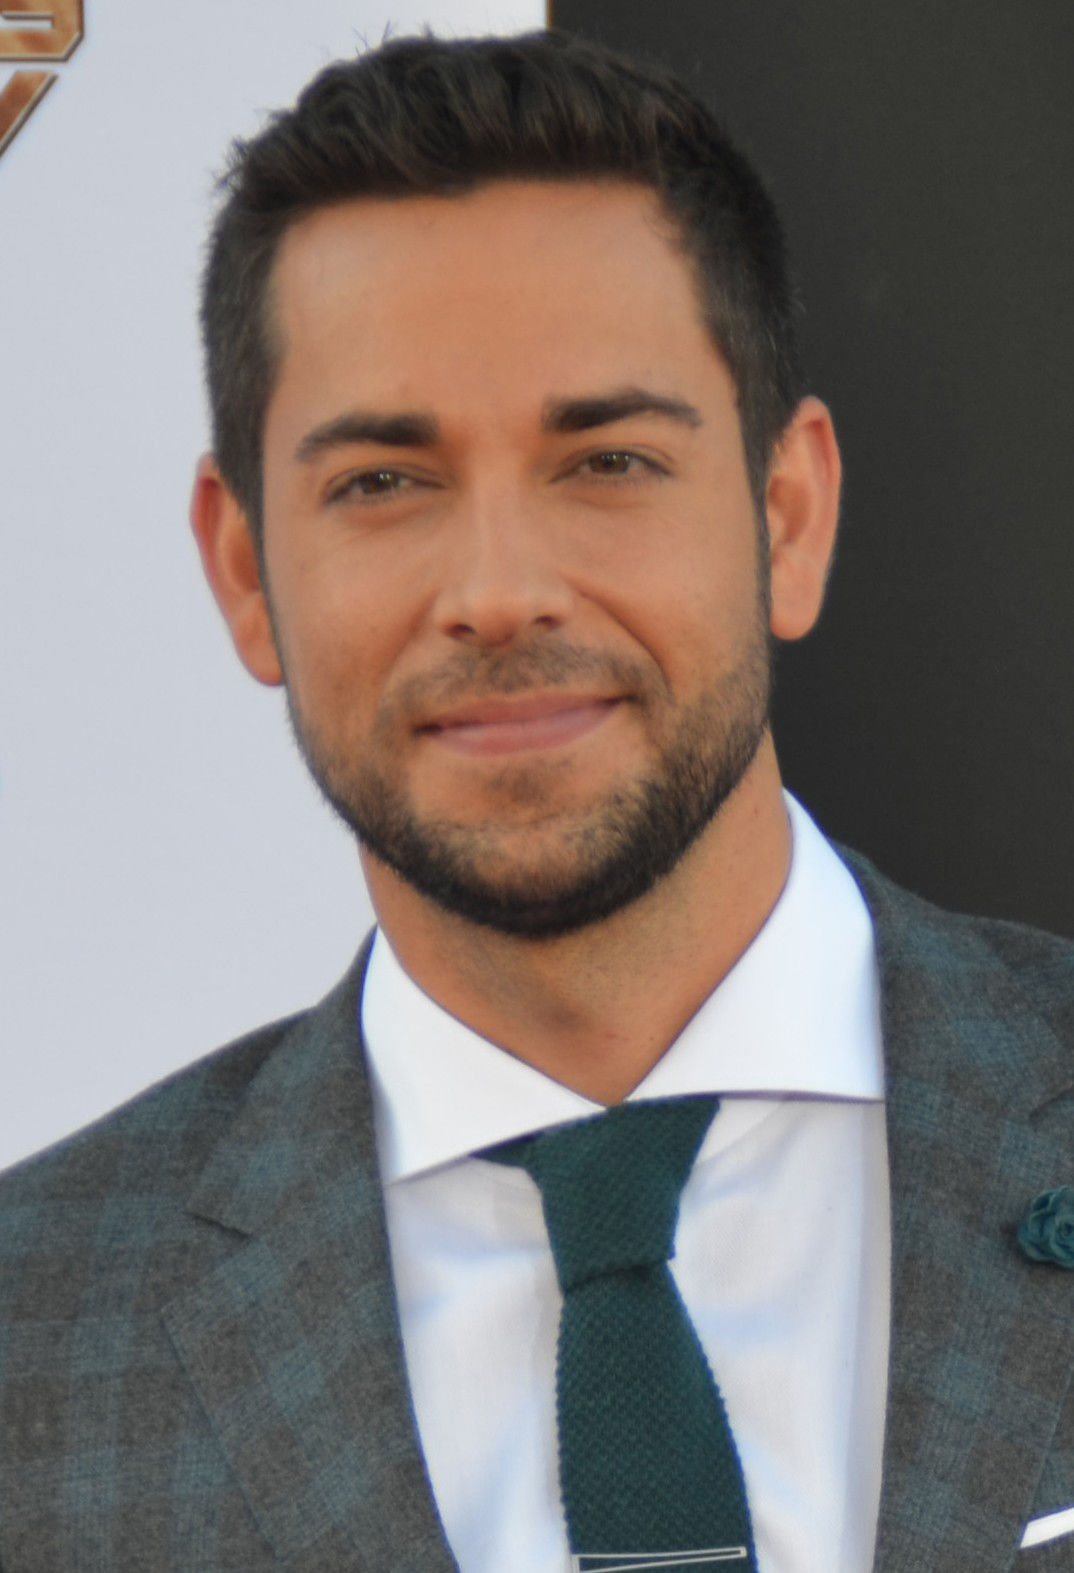 Photo of Zachary Levi: Actor from the United States